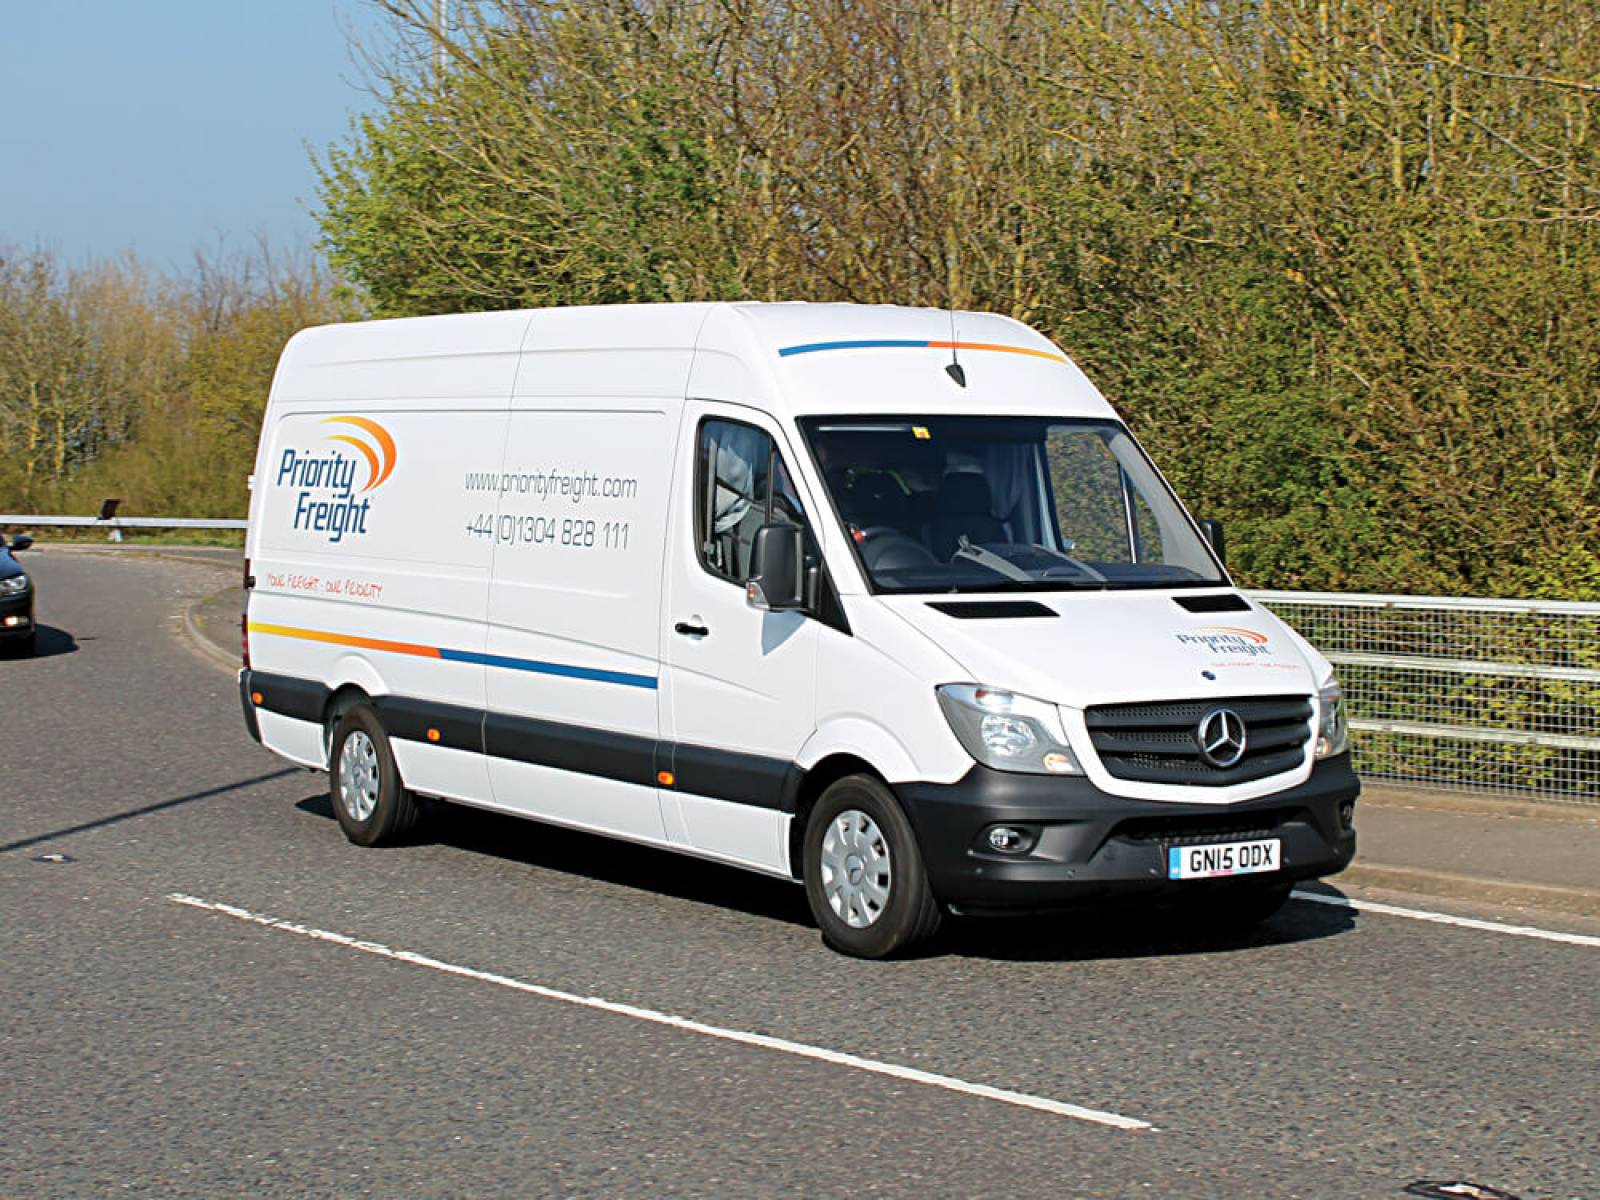 Priority-Freight-van-livery-2-design-agency-graphic-design-canterbury.jpg